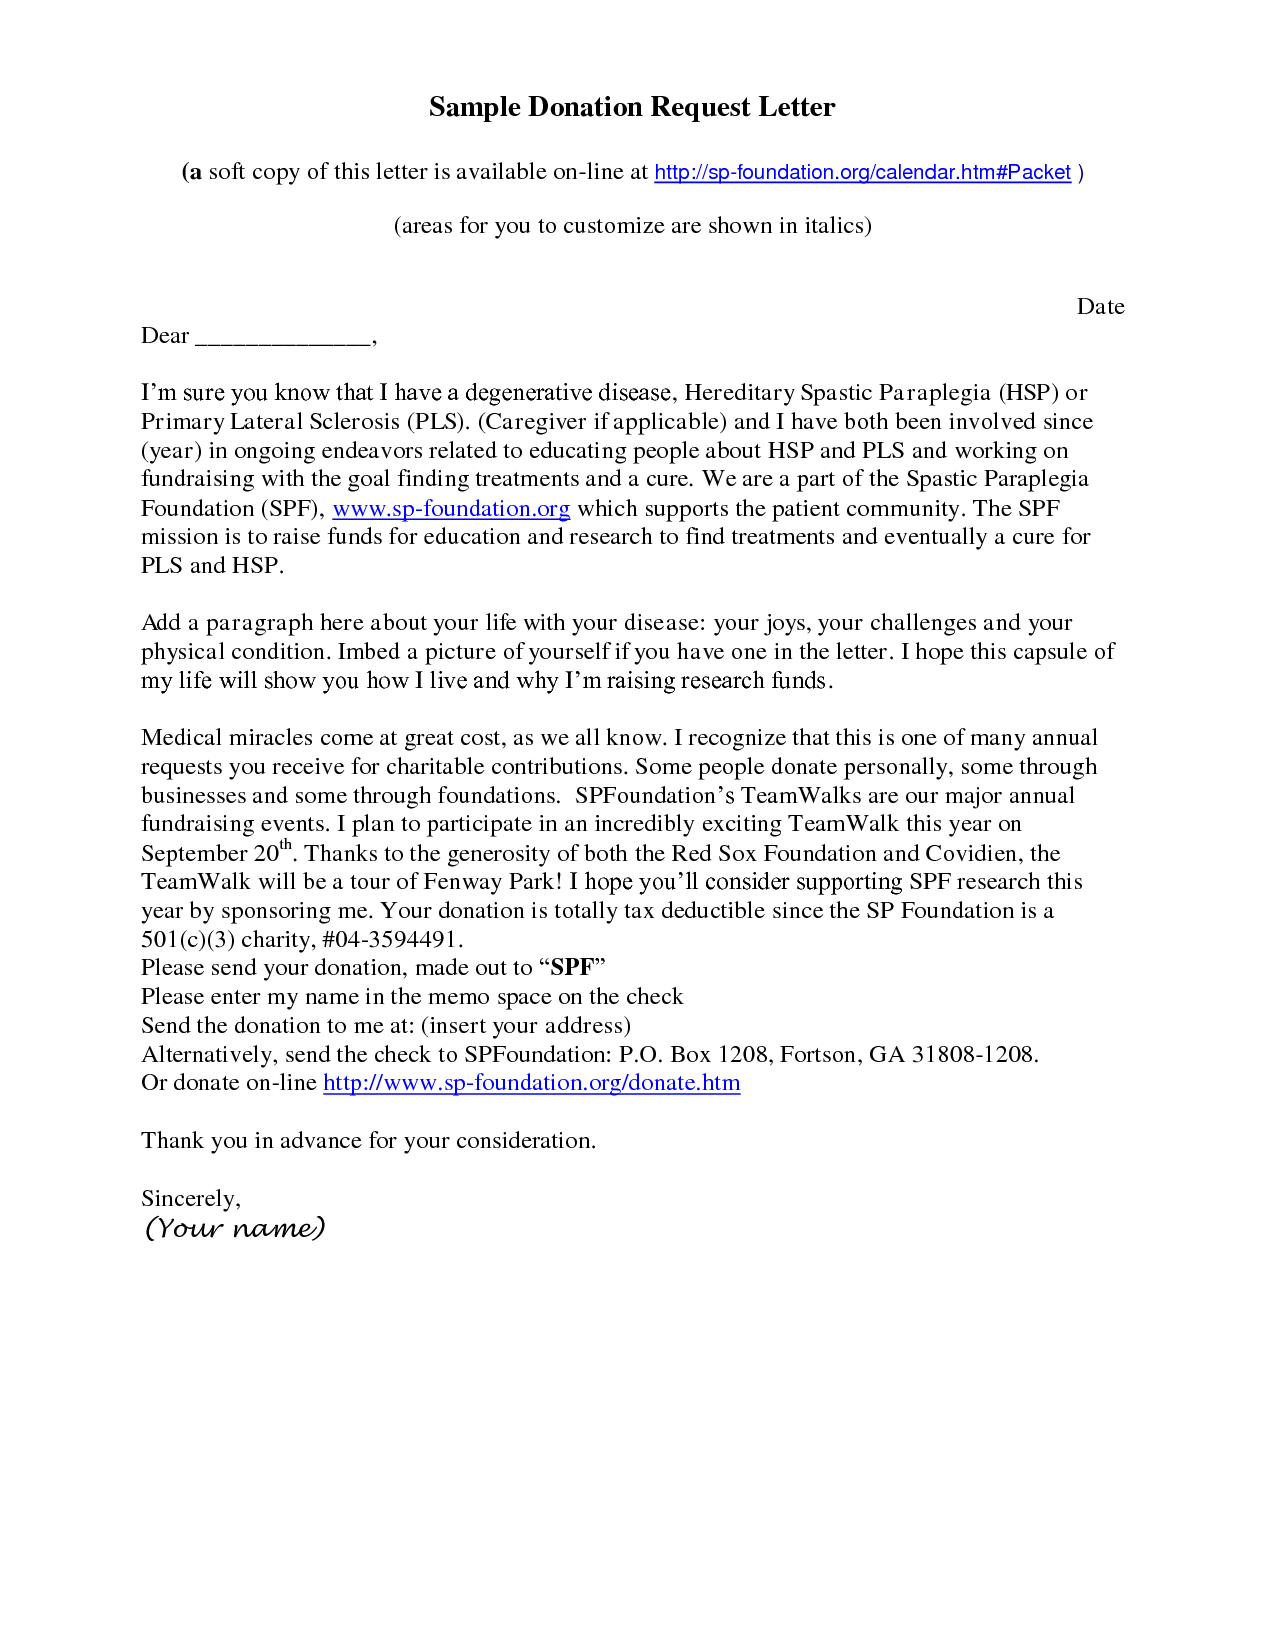 Charity Letter Template asking for Donations - How to Write A solicitation Letter for Donations Choice Image